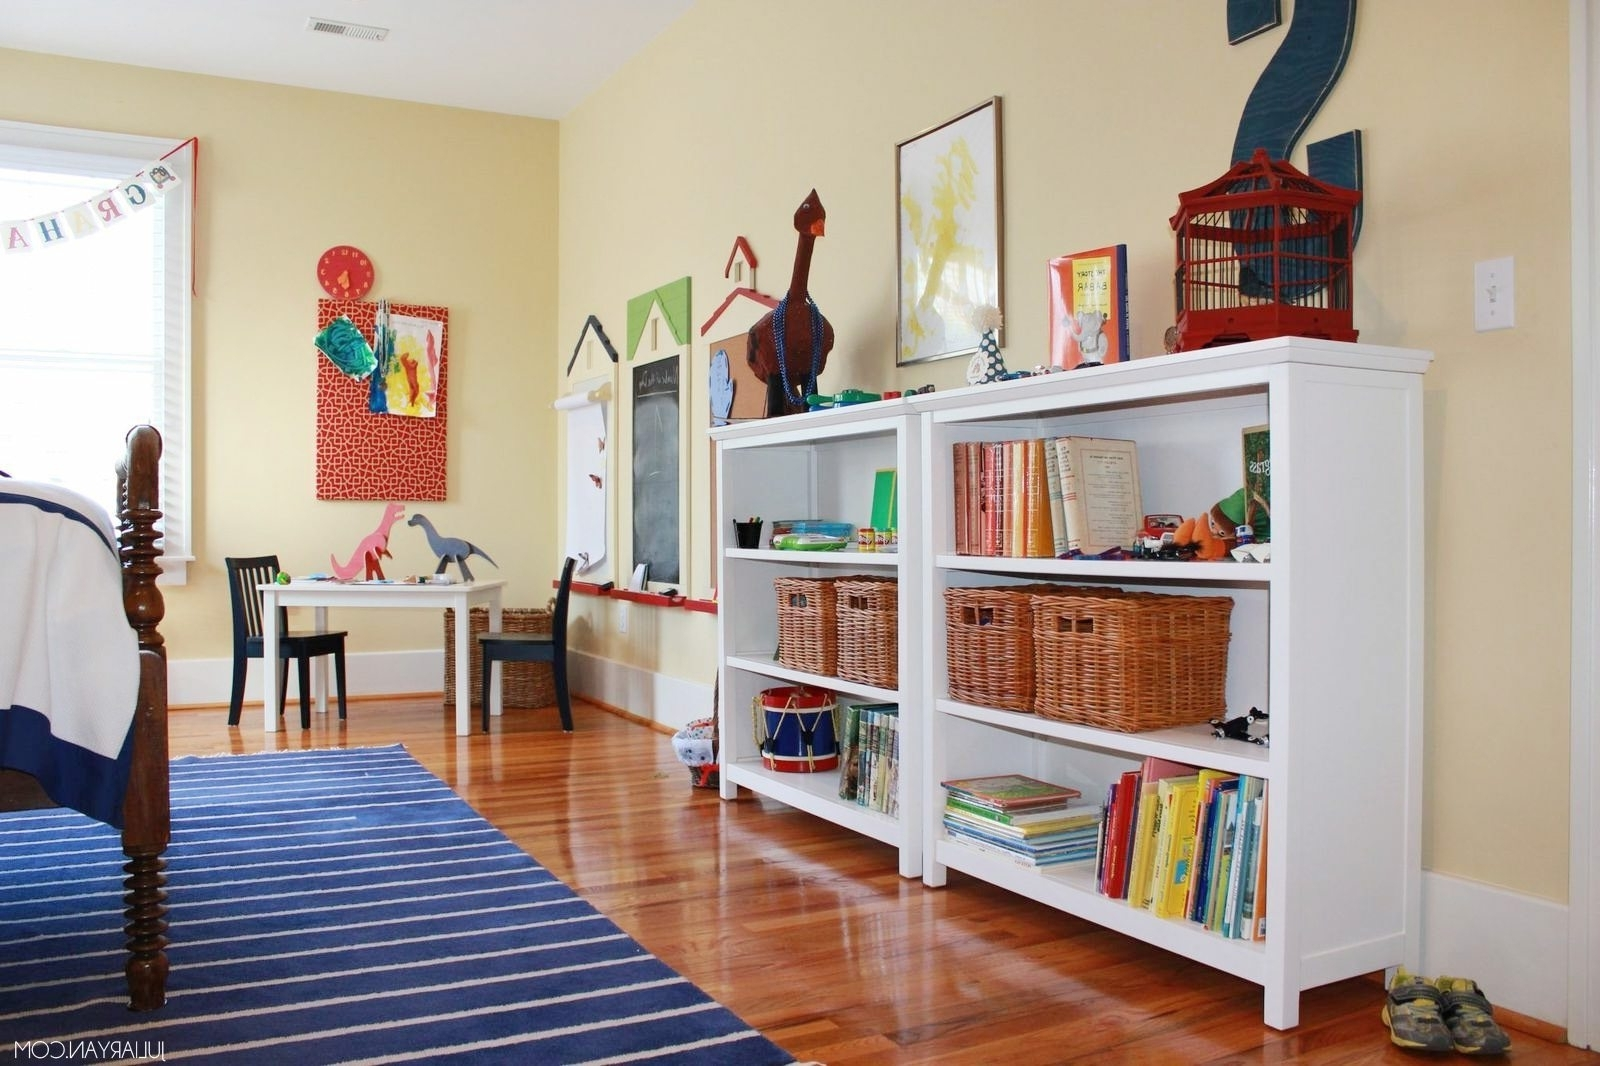 Pottery Barn Bookcases Throughout Well Liked 40 Pottery Barn Bookcases, Cameron 3 Shelf Bookcase Pottery Barn (View 13 of 15)